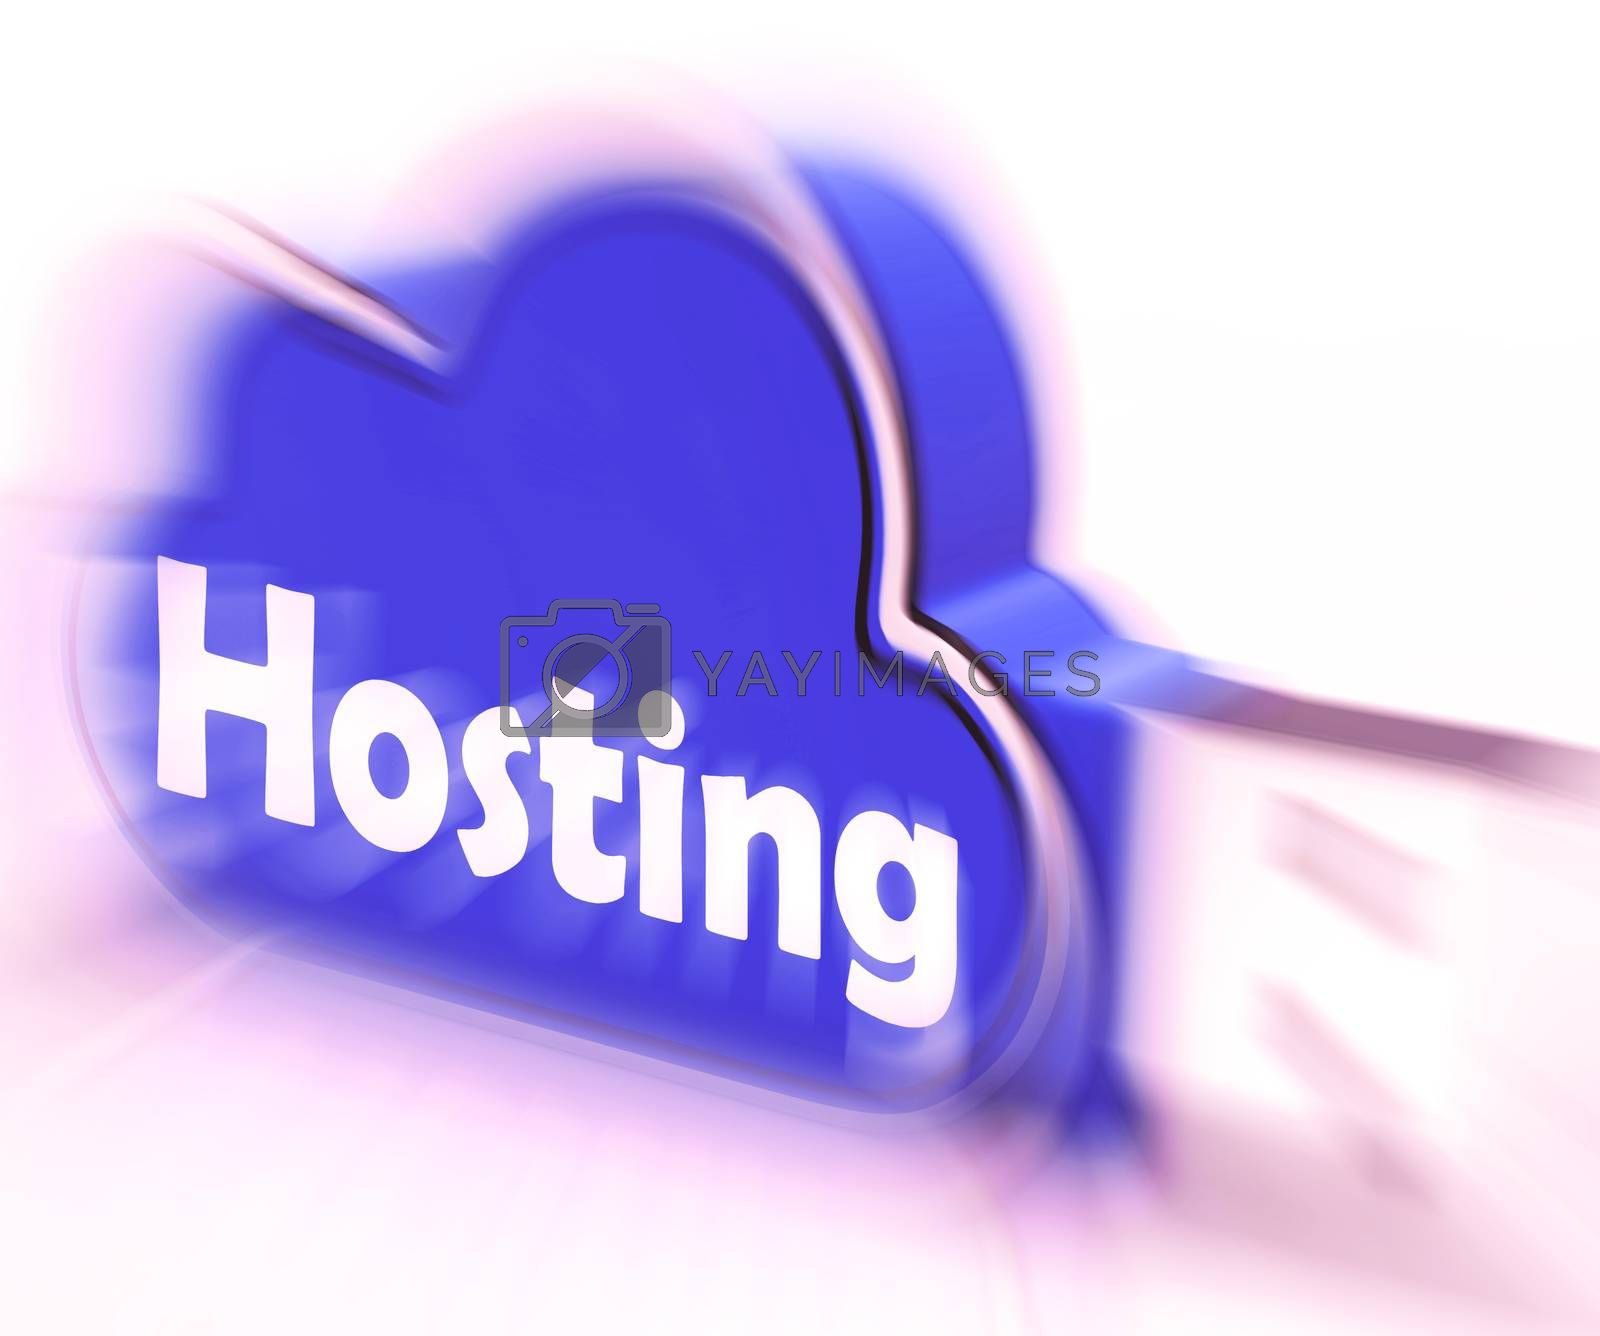 Hosting Cloud USB drive Shows Online Data Hosting by stuartmiles